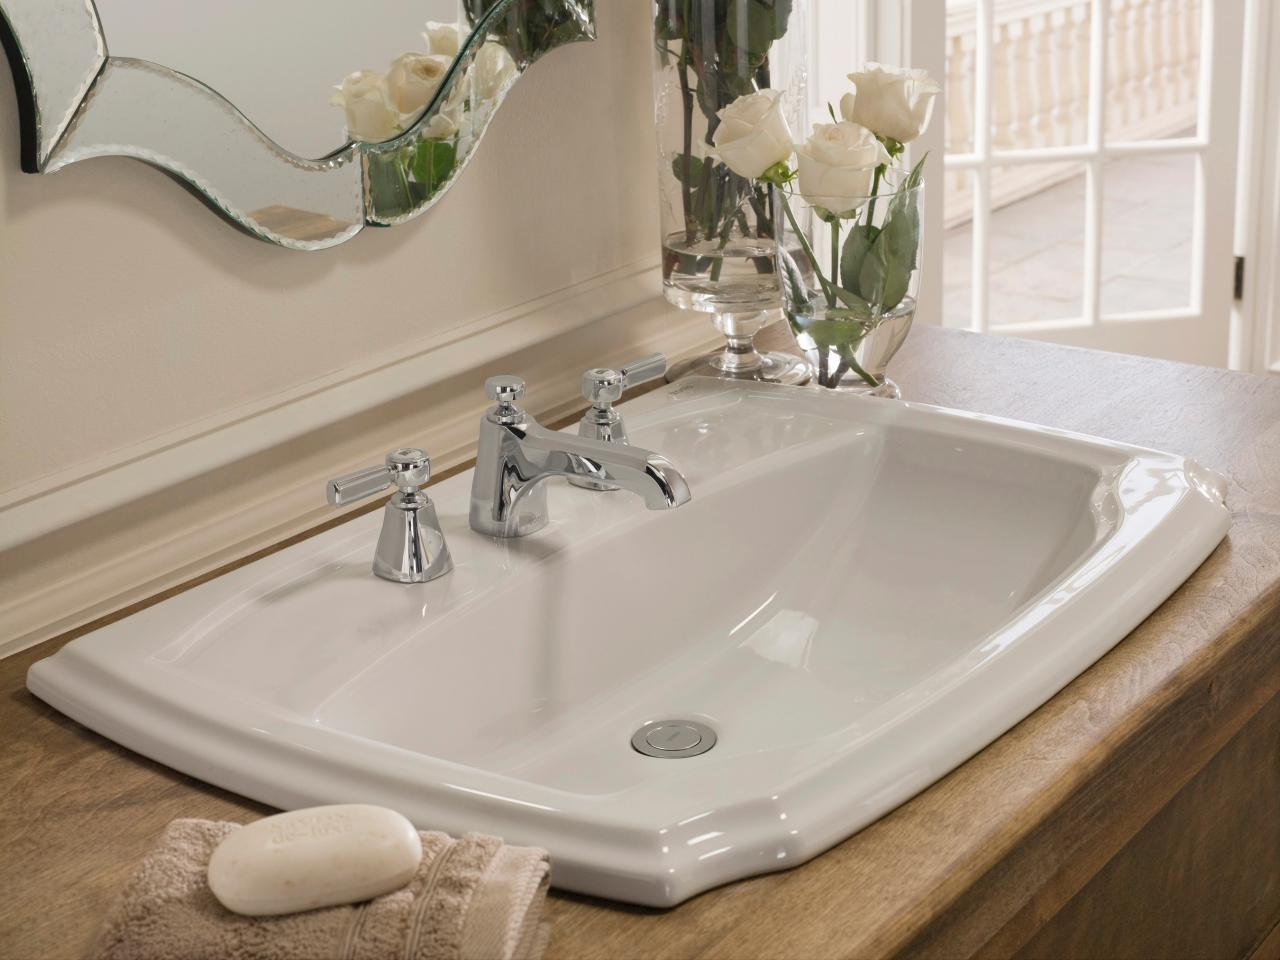 overmount kitchen sink hotel with new york best bathroom faucets - (ultimate guide & reviews 2017)